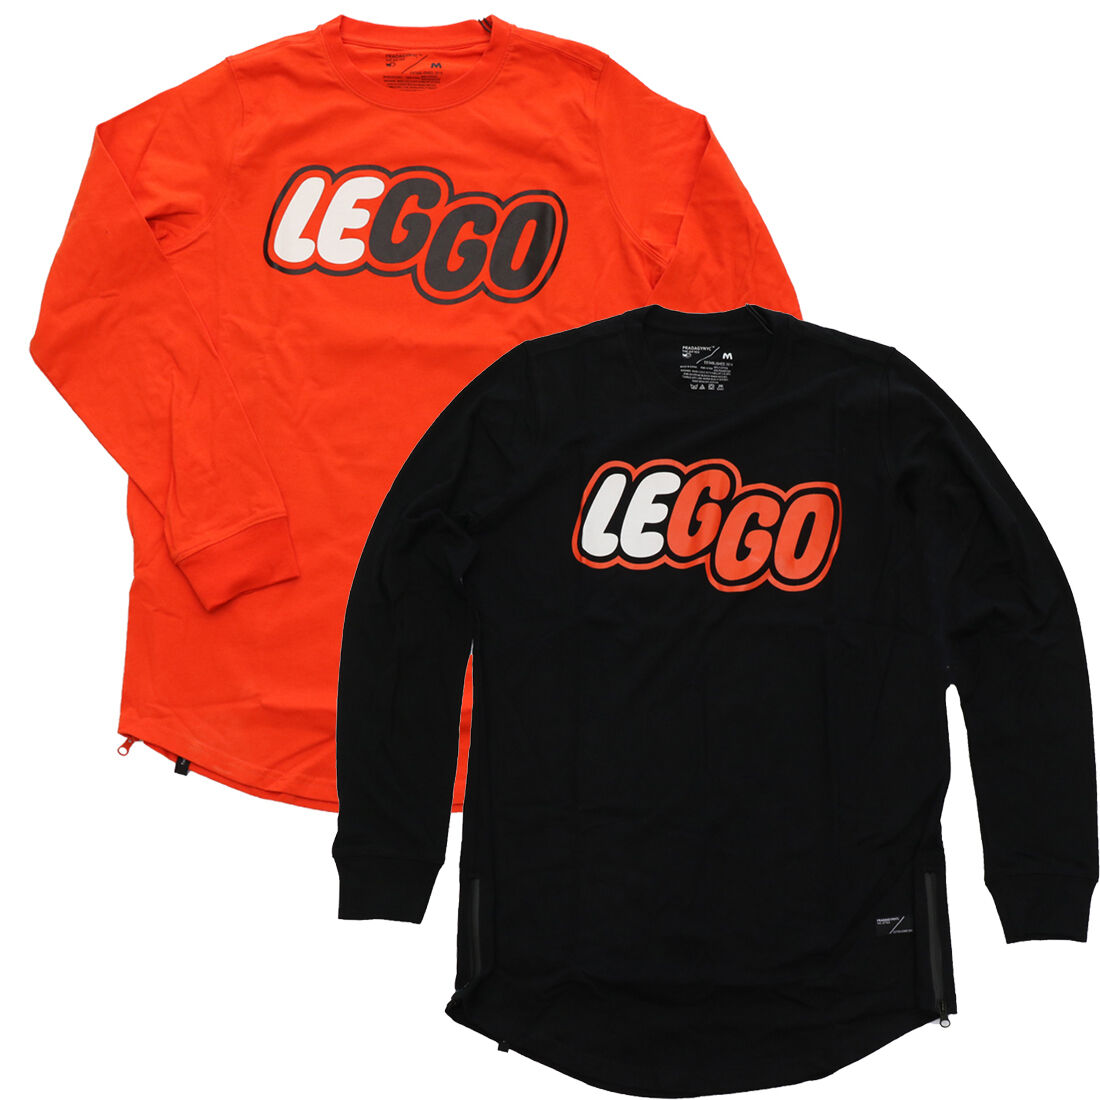 NEW PRADAGY LEGGO TEE LONG SLEEVE JERSEY PA77LS